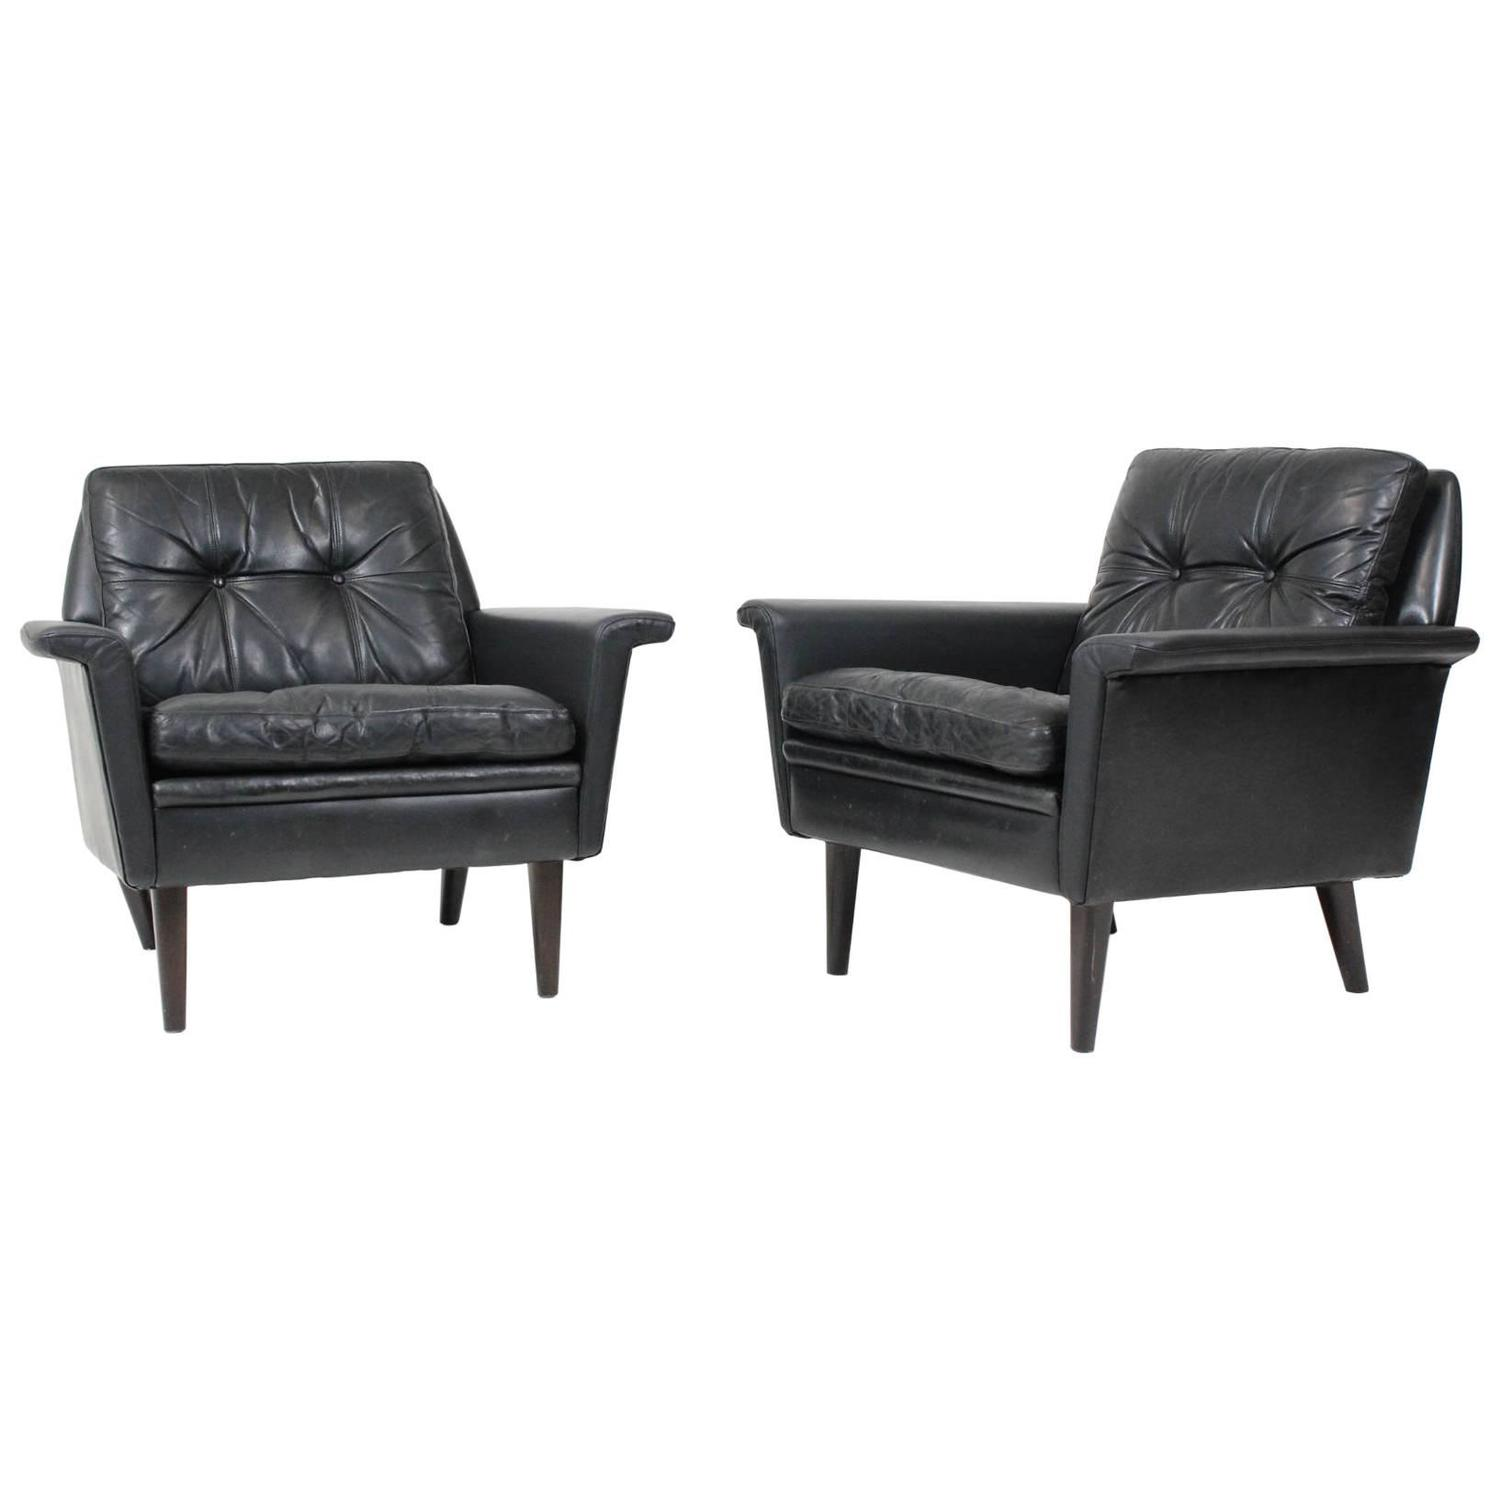 chair metal black contemporary series zb zoom hercules reception with gg frame definity leather guest bk